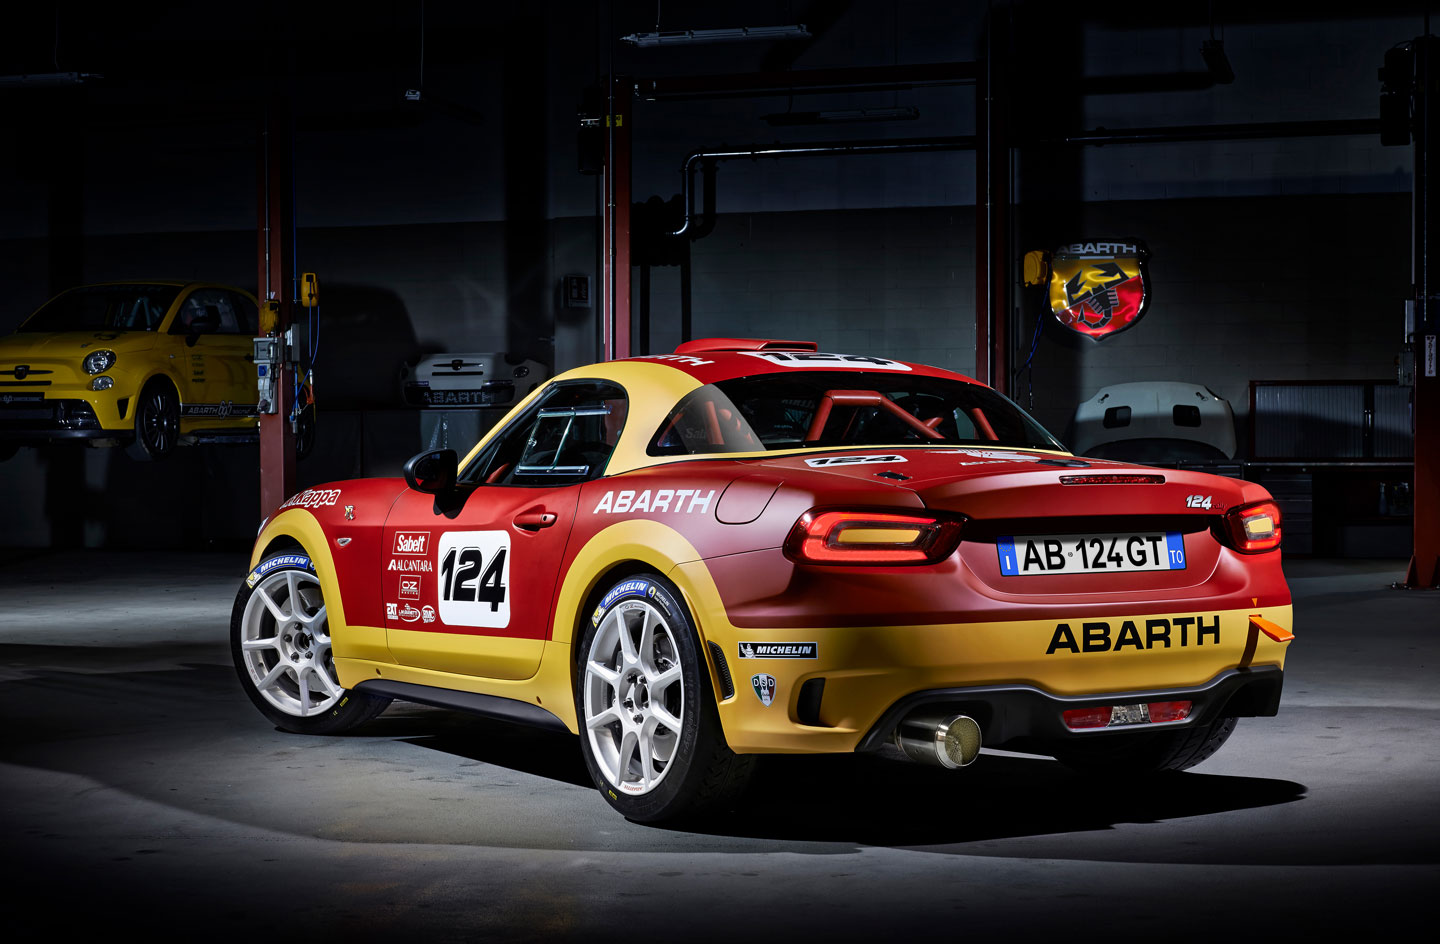 Fiat Abarth 124 Rally makes racing debut at 85th Monte Carlo